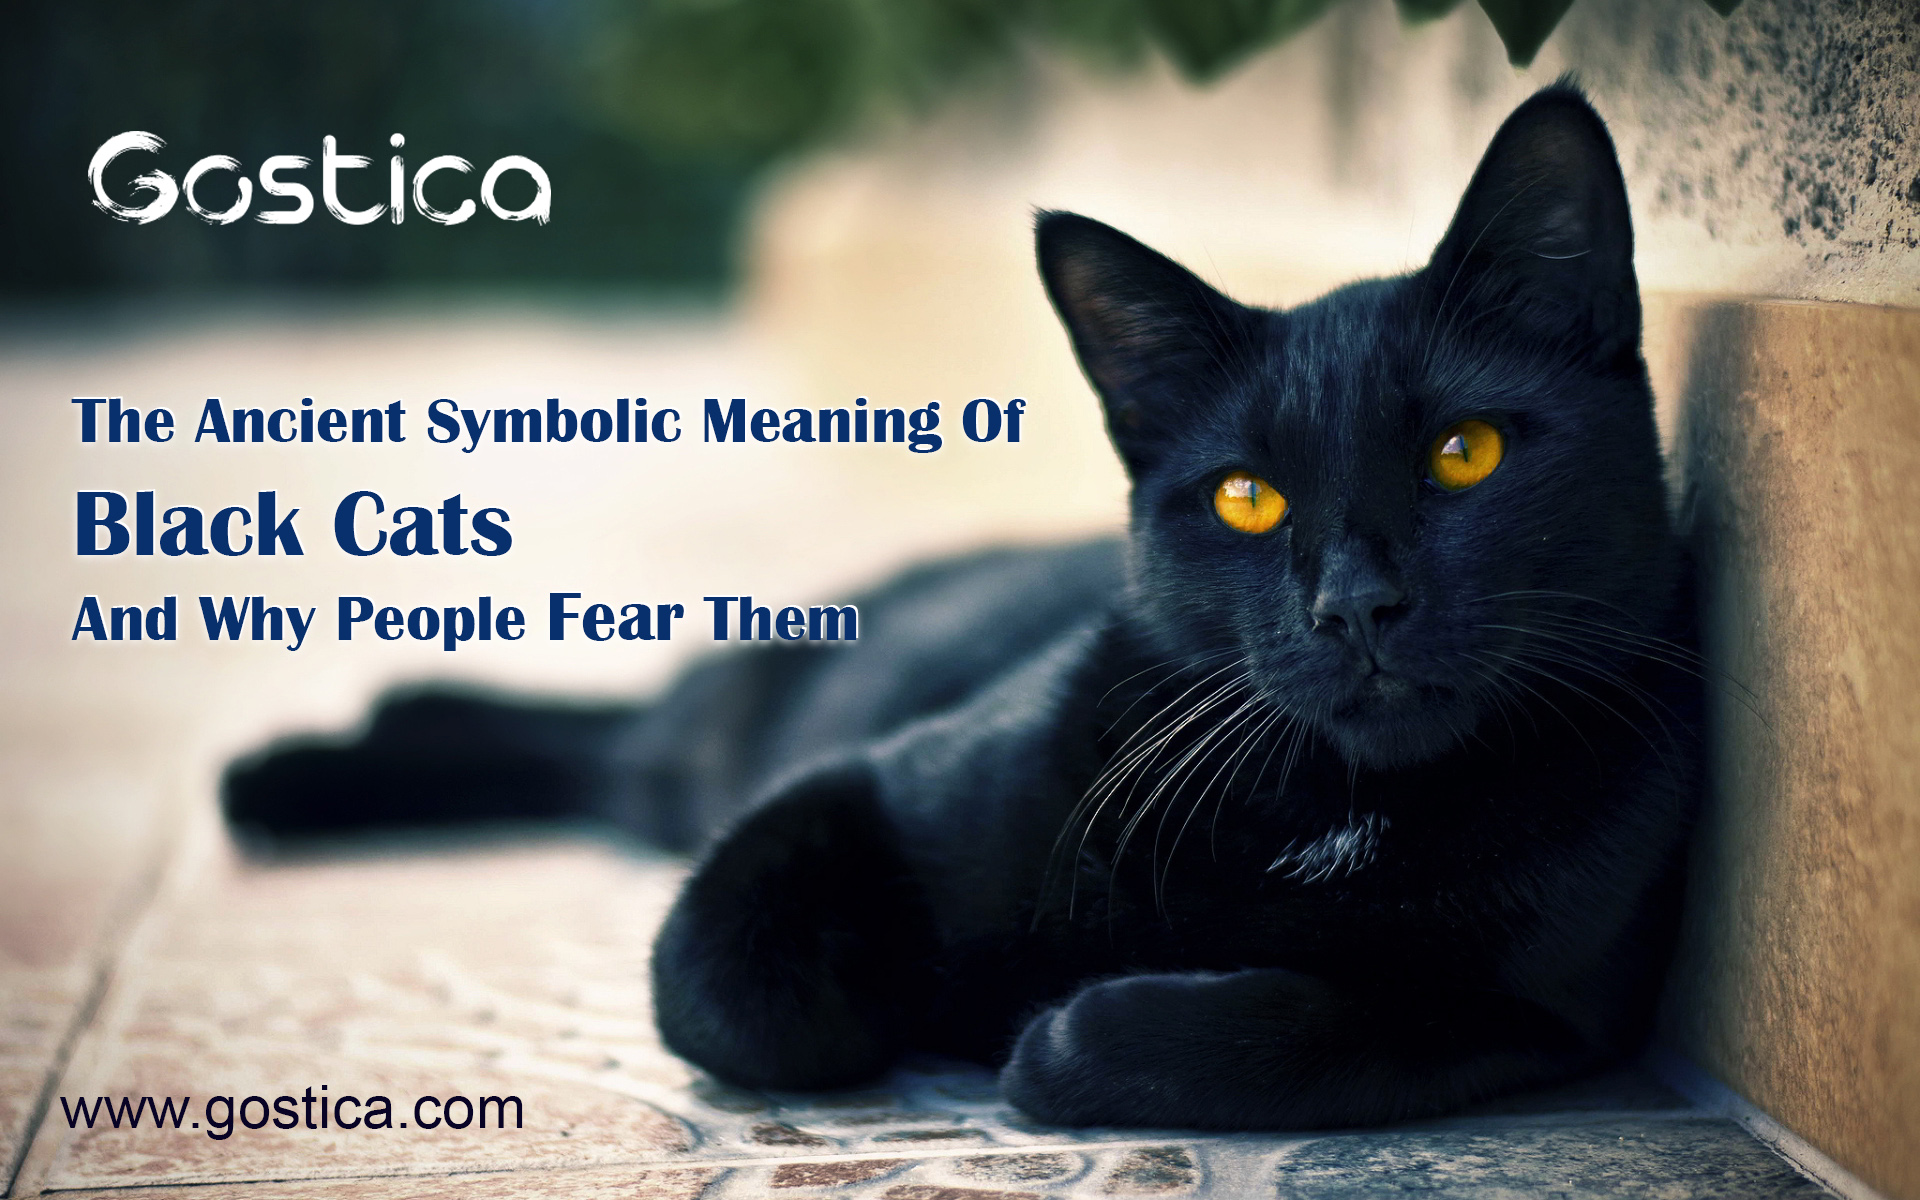 The Ancient Symbolic Meaning Of Black Cats And Why People Fear Them